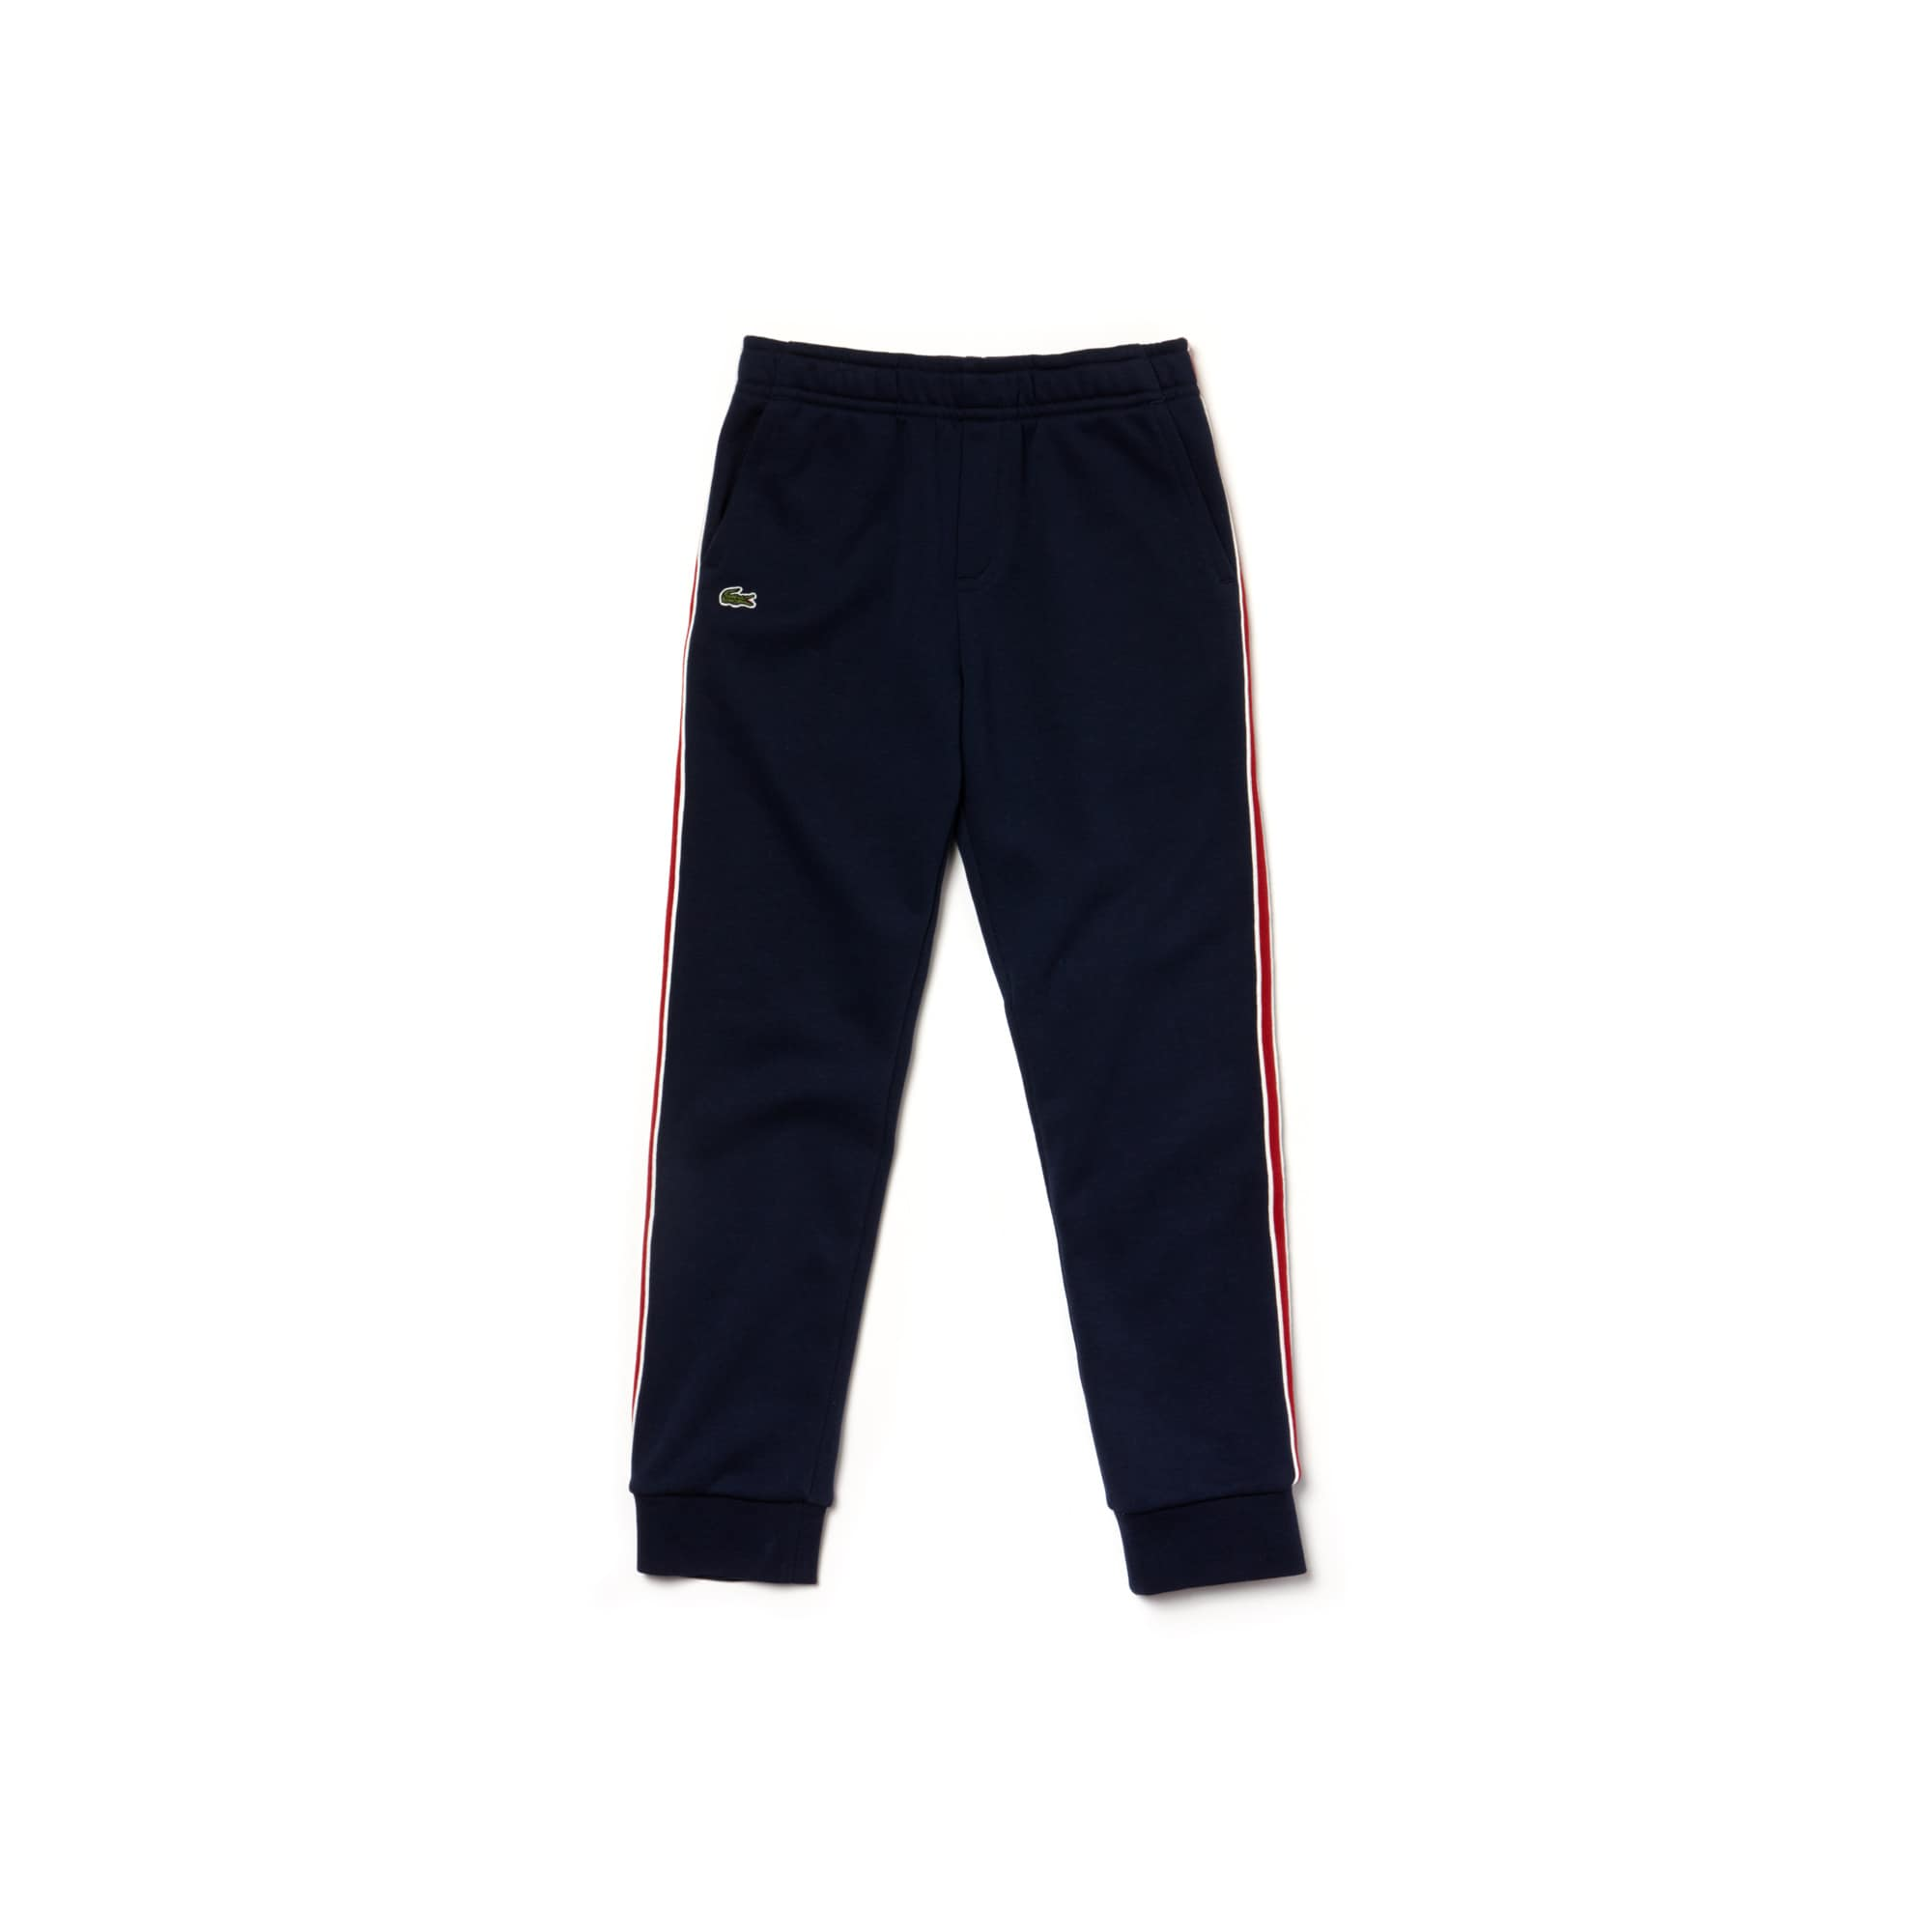 Boys' Side Bands Fleece Sweatpants